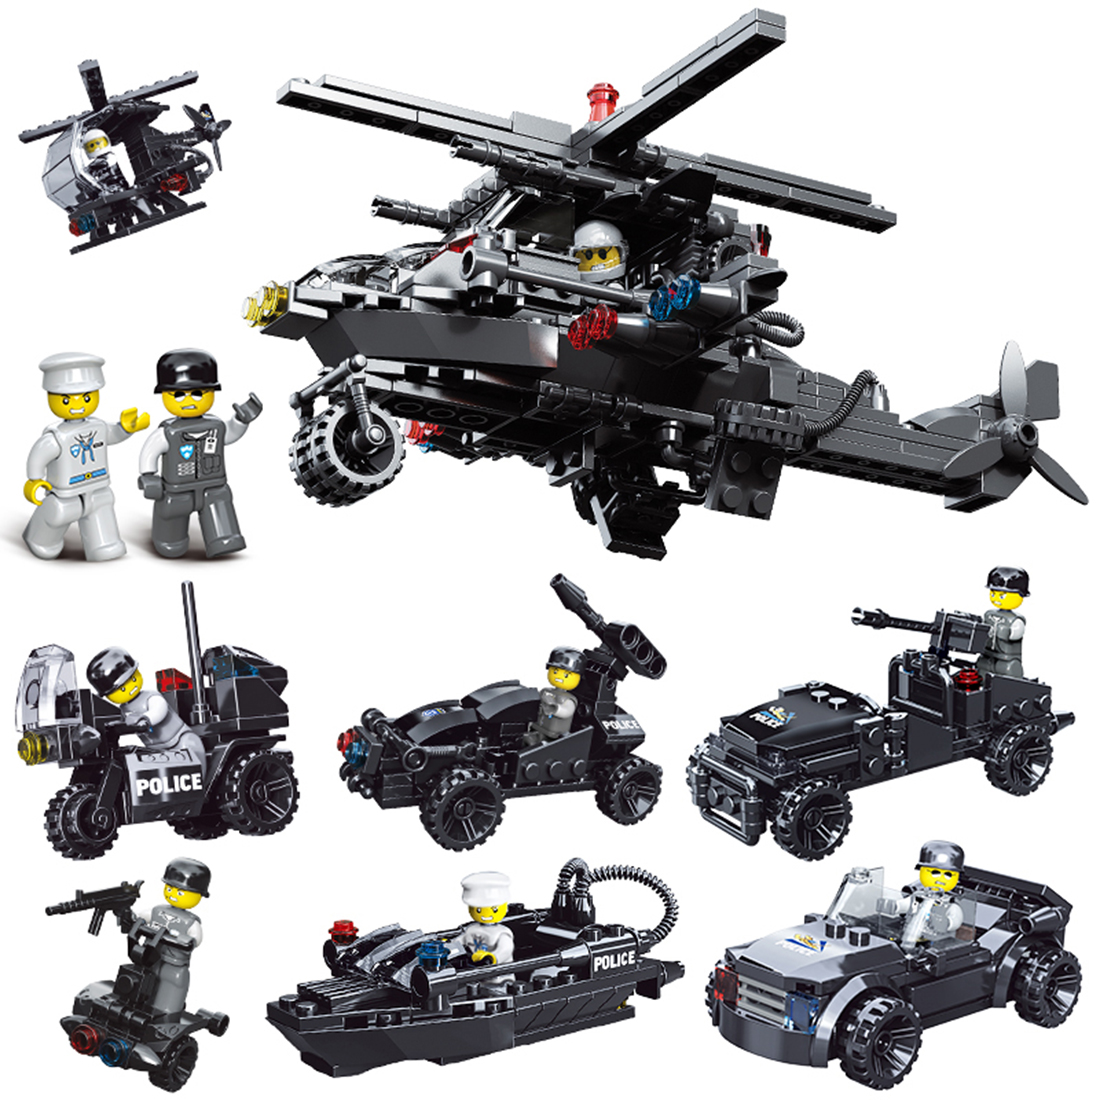 New Arrive Durable Small Particle Diy Puzzle Assembly Special Policeman Sdu Doll Building Block Toys For Children Playing Kits Toys & Hobbies